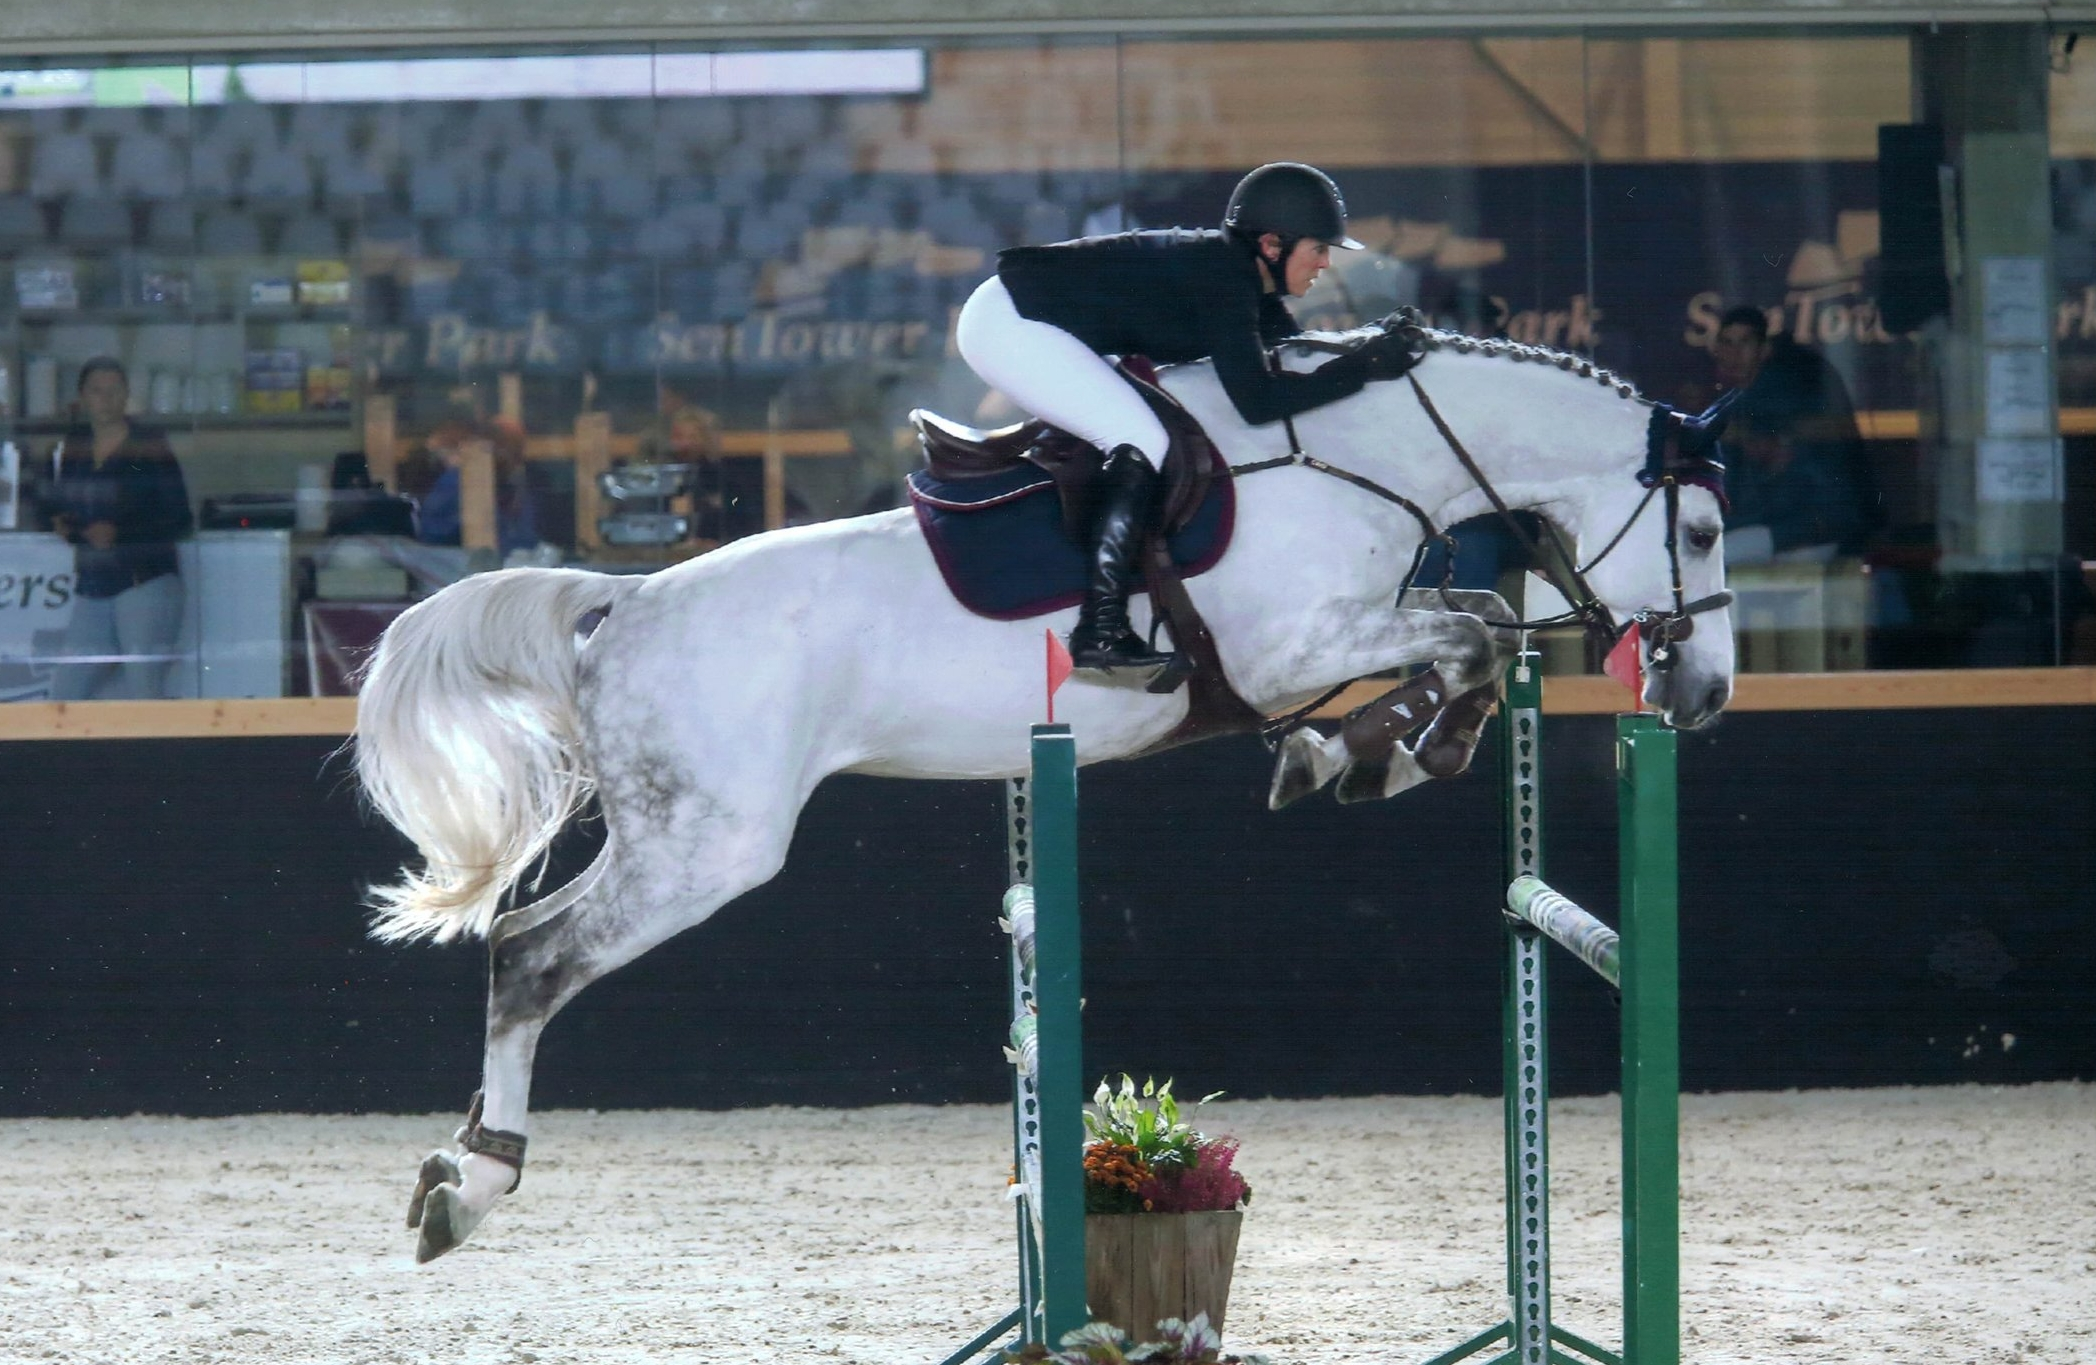 Celsius is making a name for himself in the equitation ranks on the West Coast USA